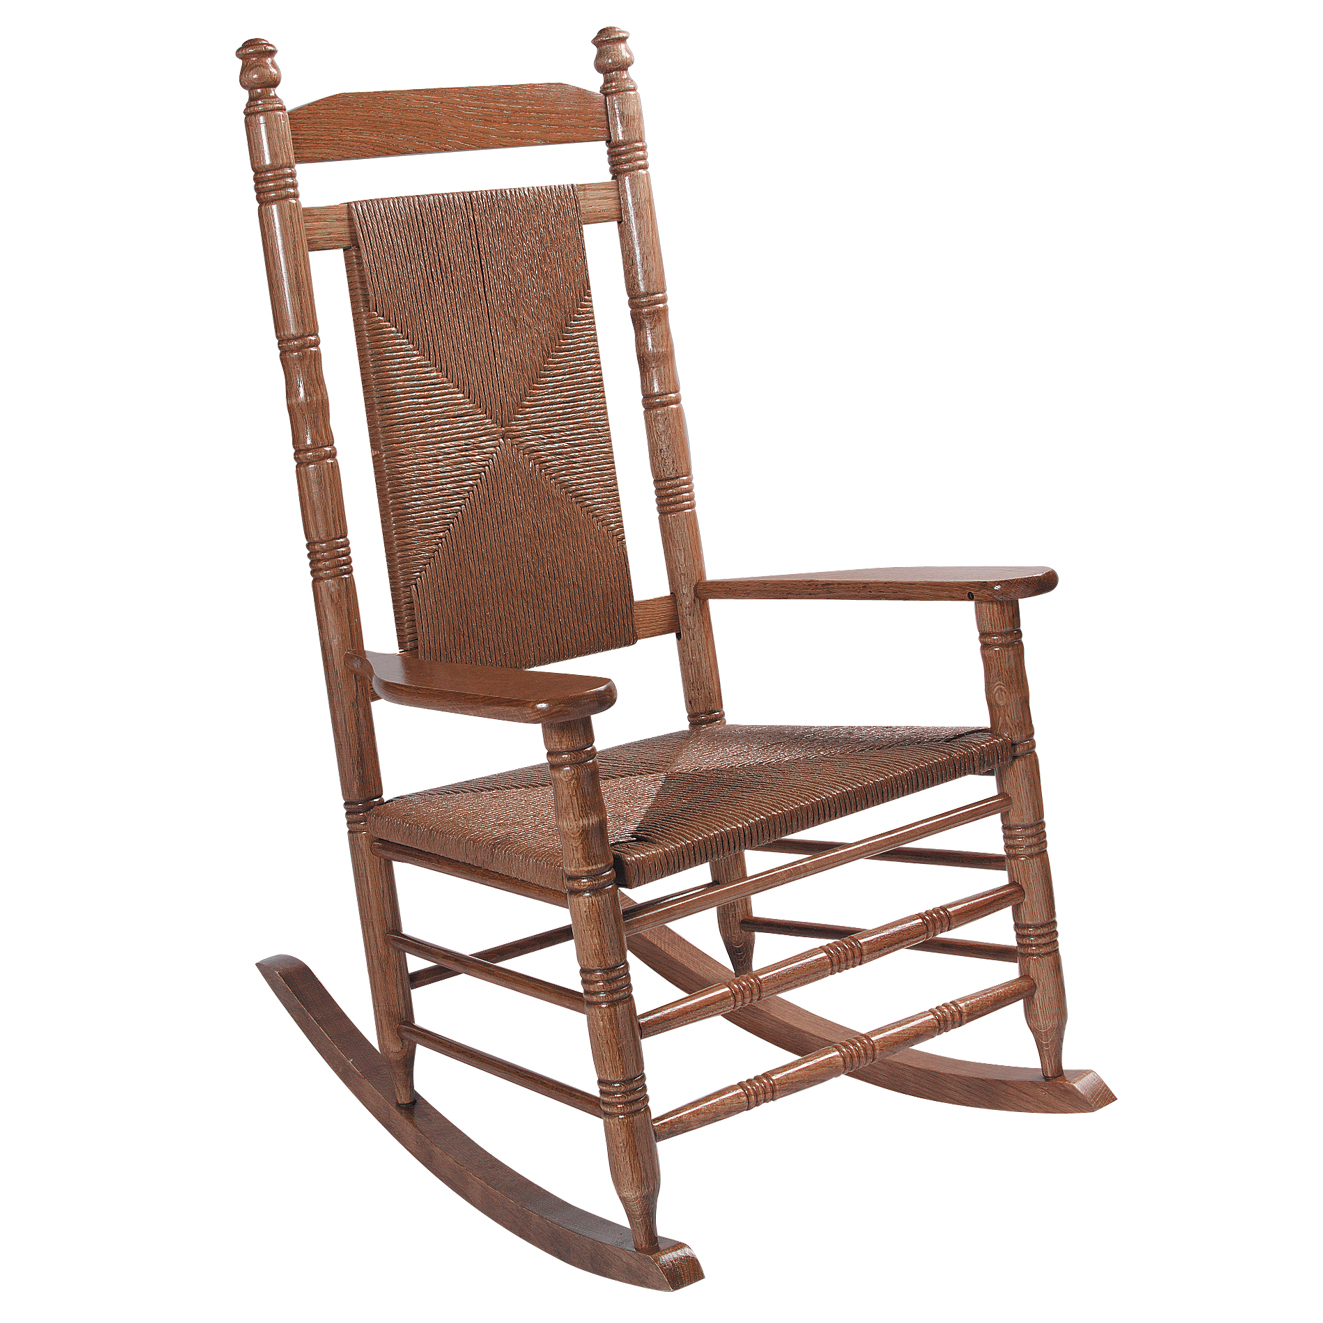 woven rocking chair oversized aluminum indoor wooden chairs cracker barrel old country store seat hardwood